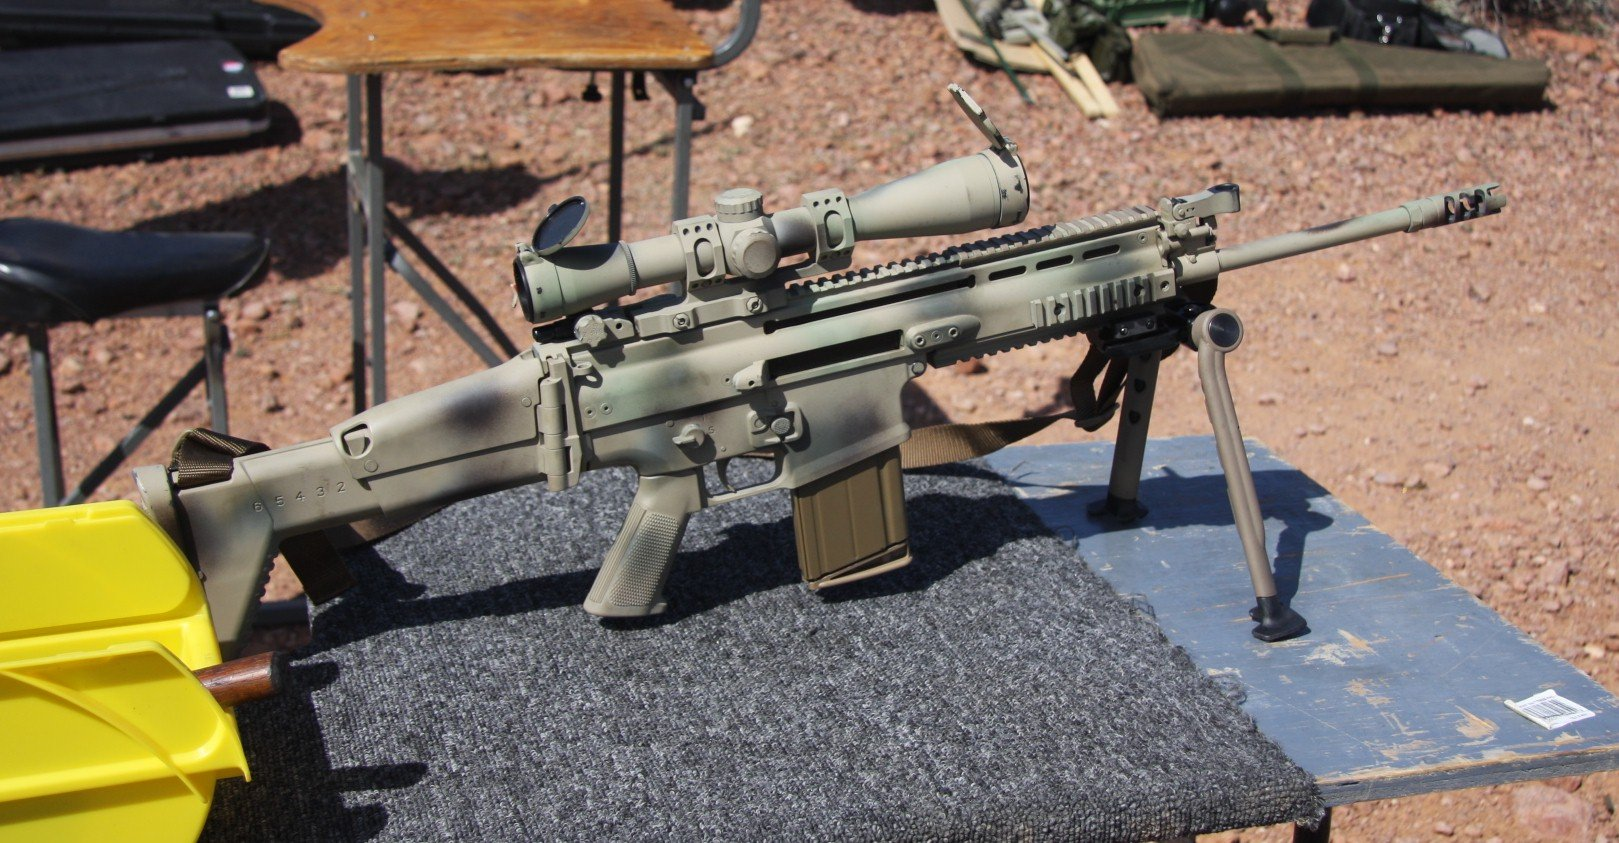 fn scar this is my rifle this is my gun s o g